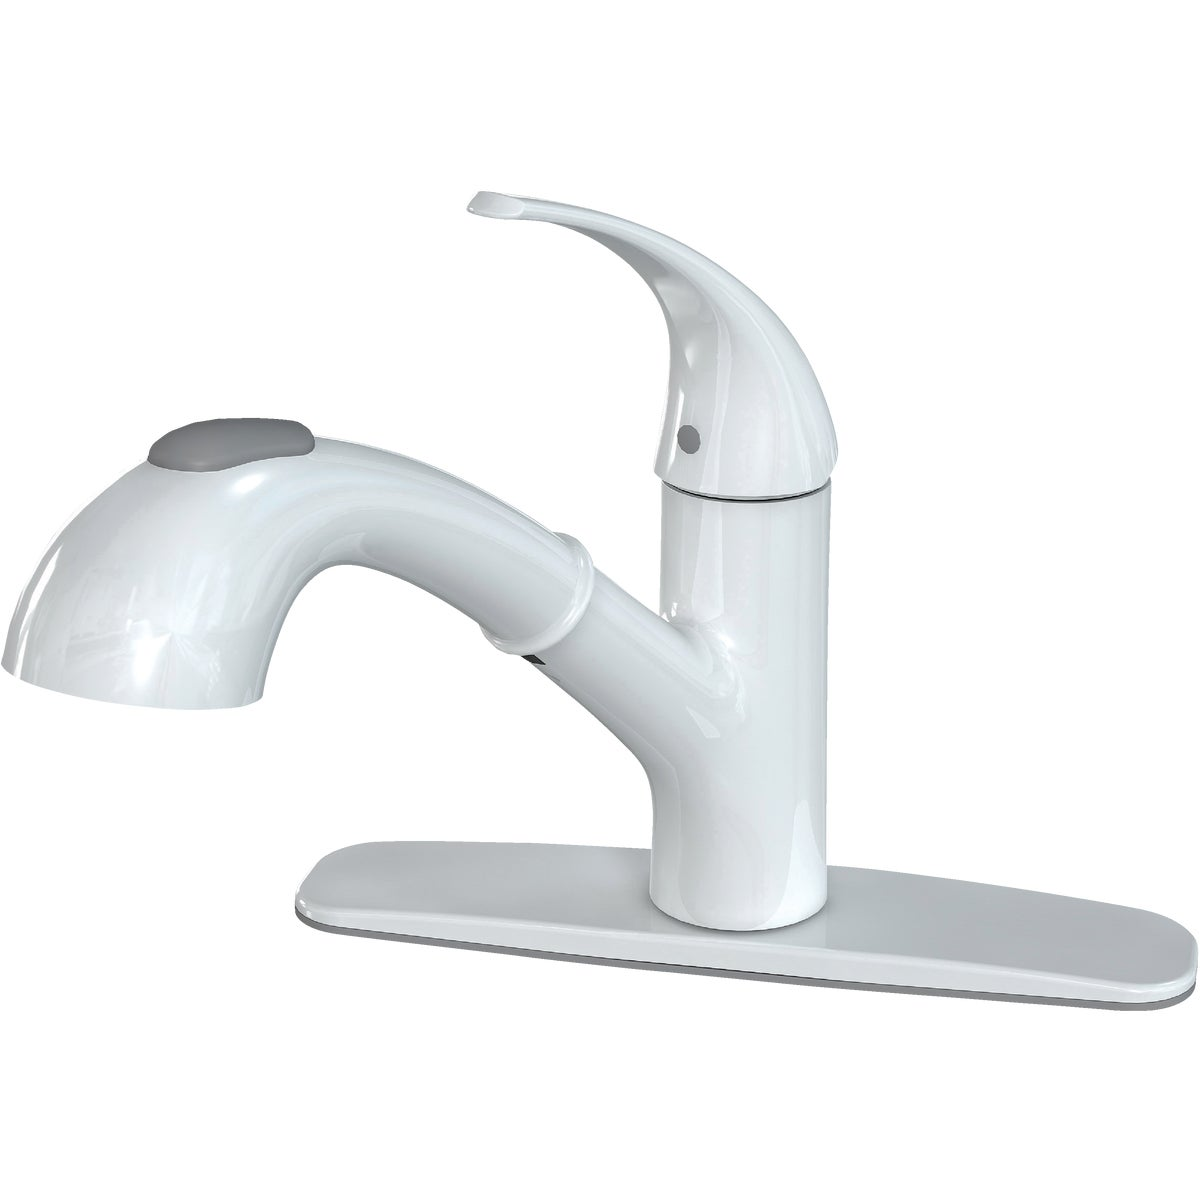 WH PULLOUT KITCHN FAUCET - FP4A4079WH by Globe Union